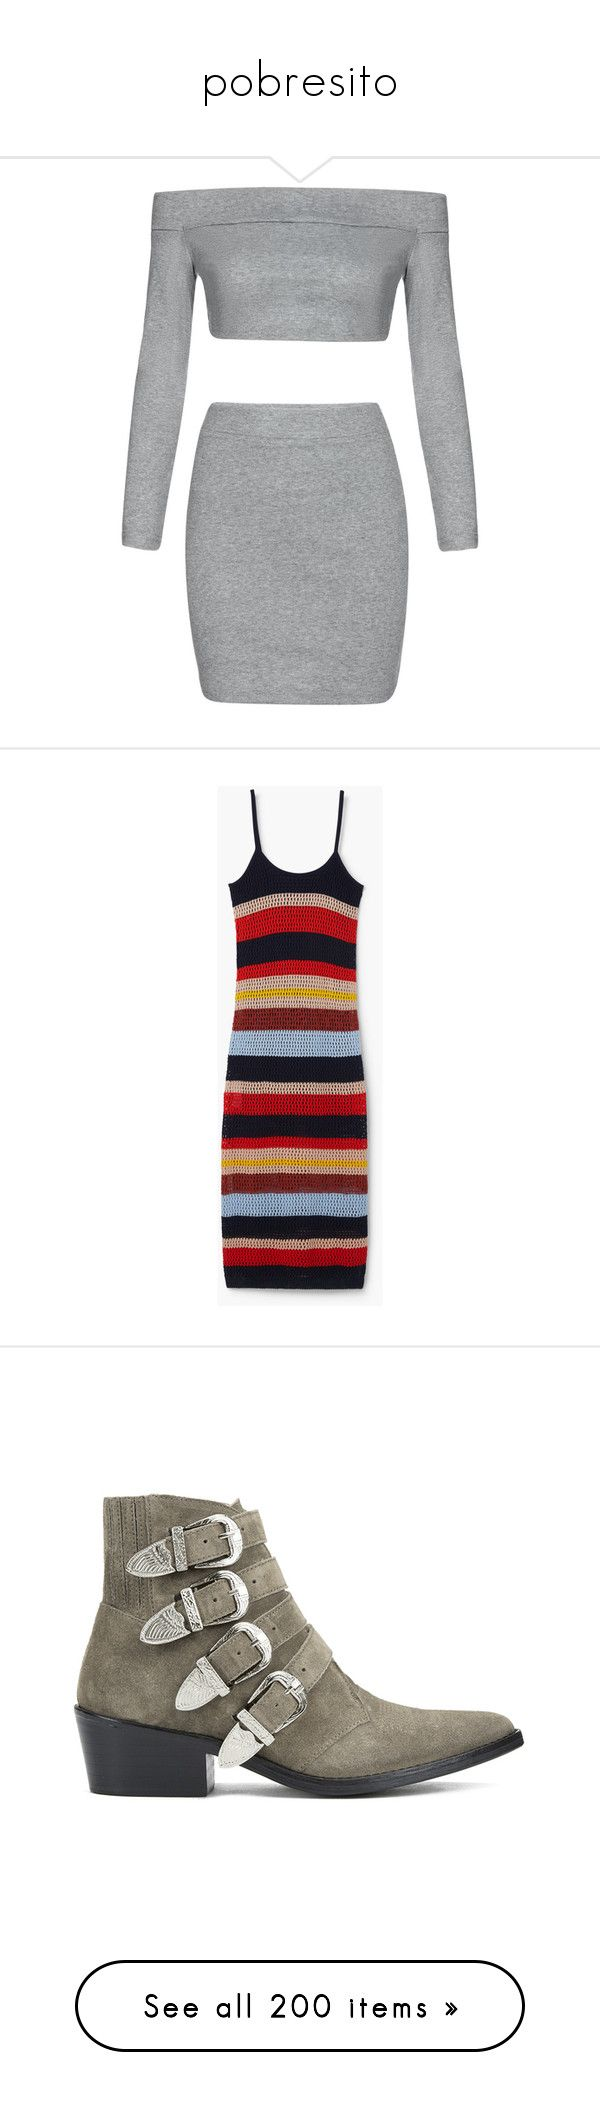 """""""pobresito"""" by whatevurs ❤ liked on Polyvore featuring dresses, skirts, vestidos, outfits, bottoms, grey, mango, dark navy, thin strap dress and side slit dress"""